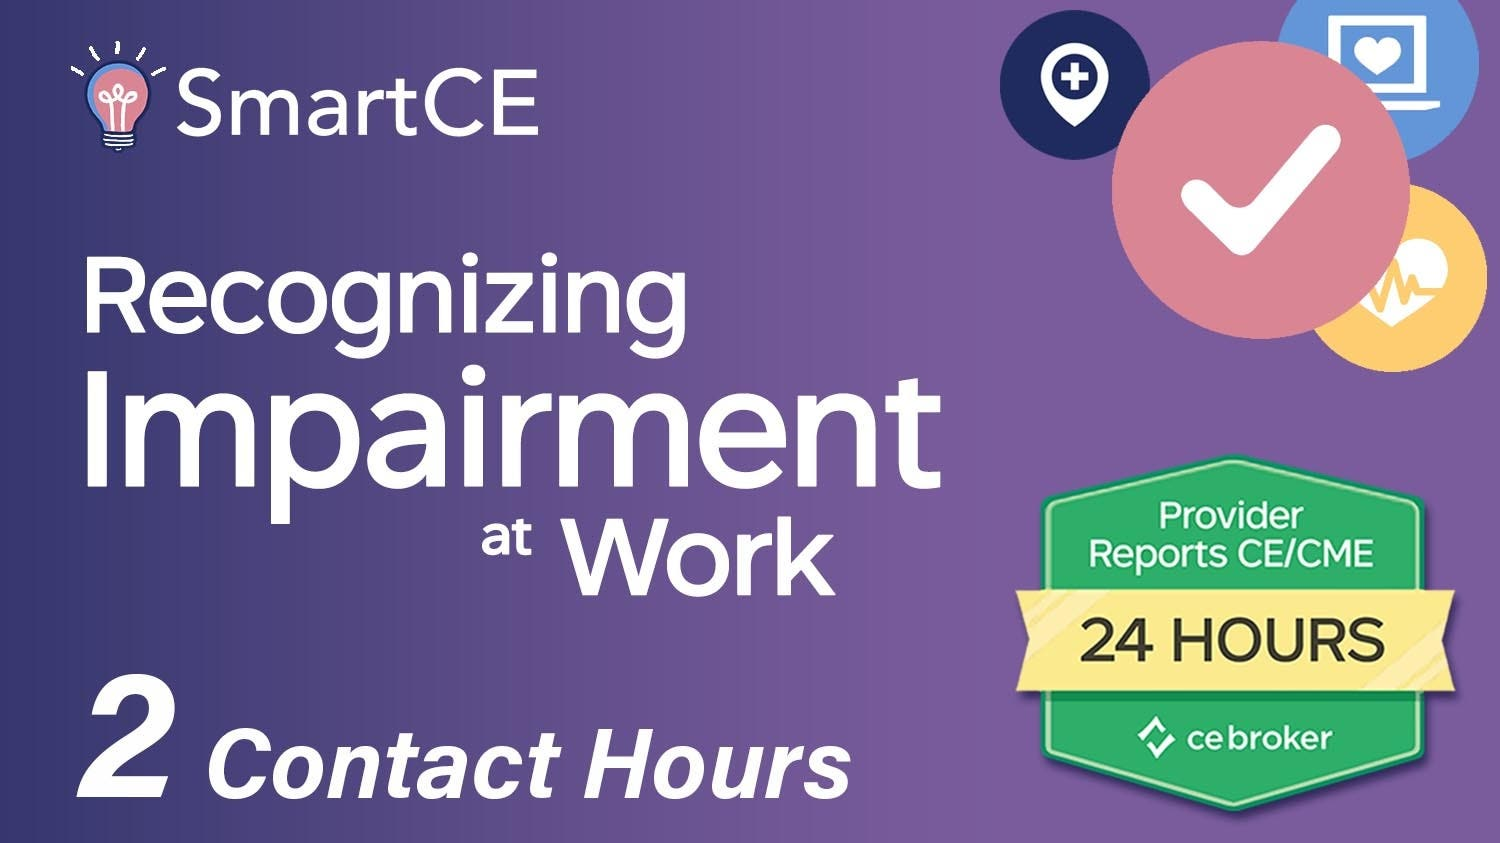 Recognizing Impairment at Work: 2 Contact Hours /20-576927